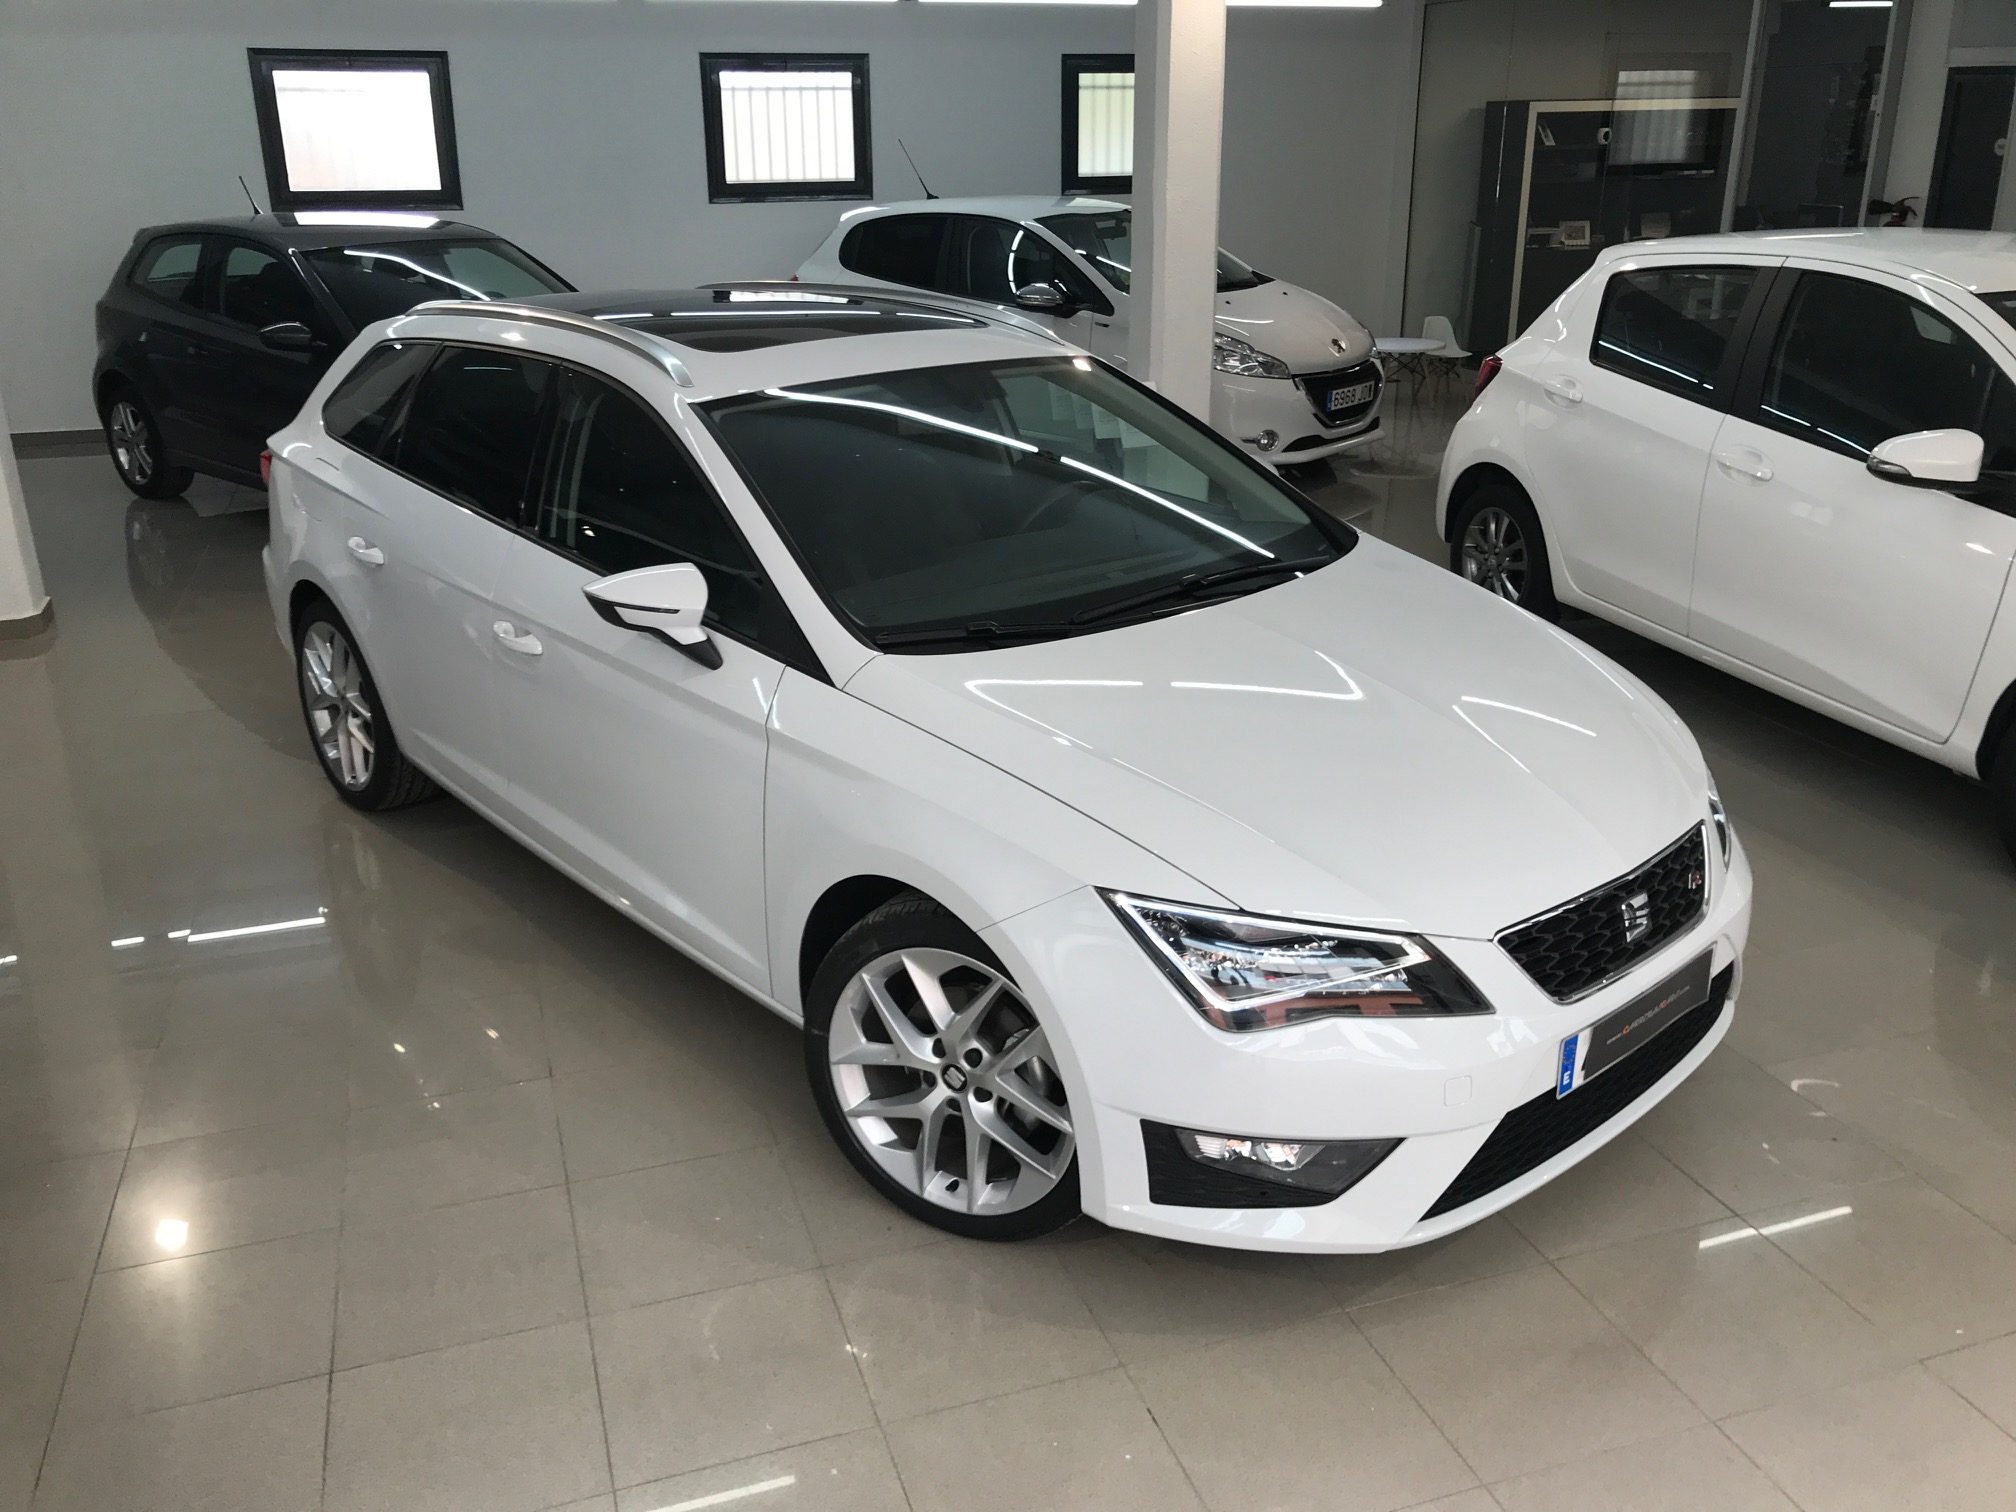 seat leon st fr 2 0tdi 150cv dsg carreras cars. Black Bedroom Furniture Sets. Home Design Ideas